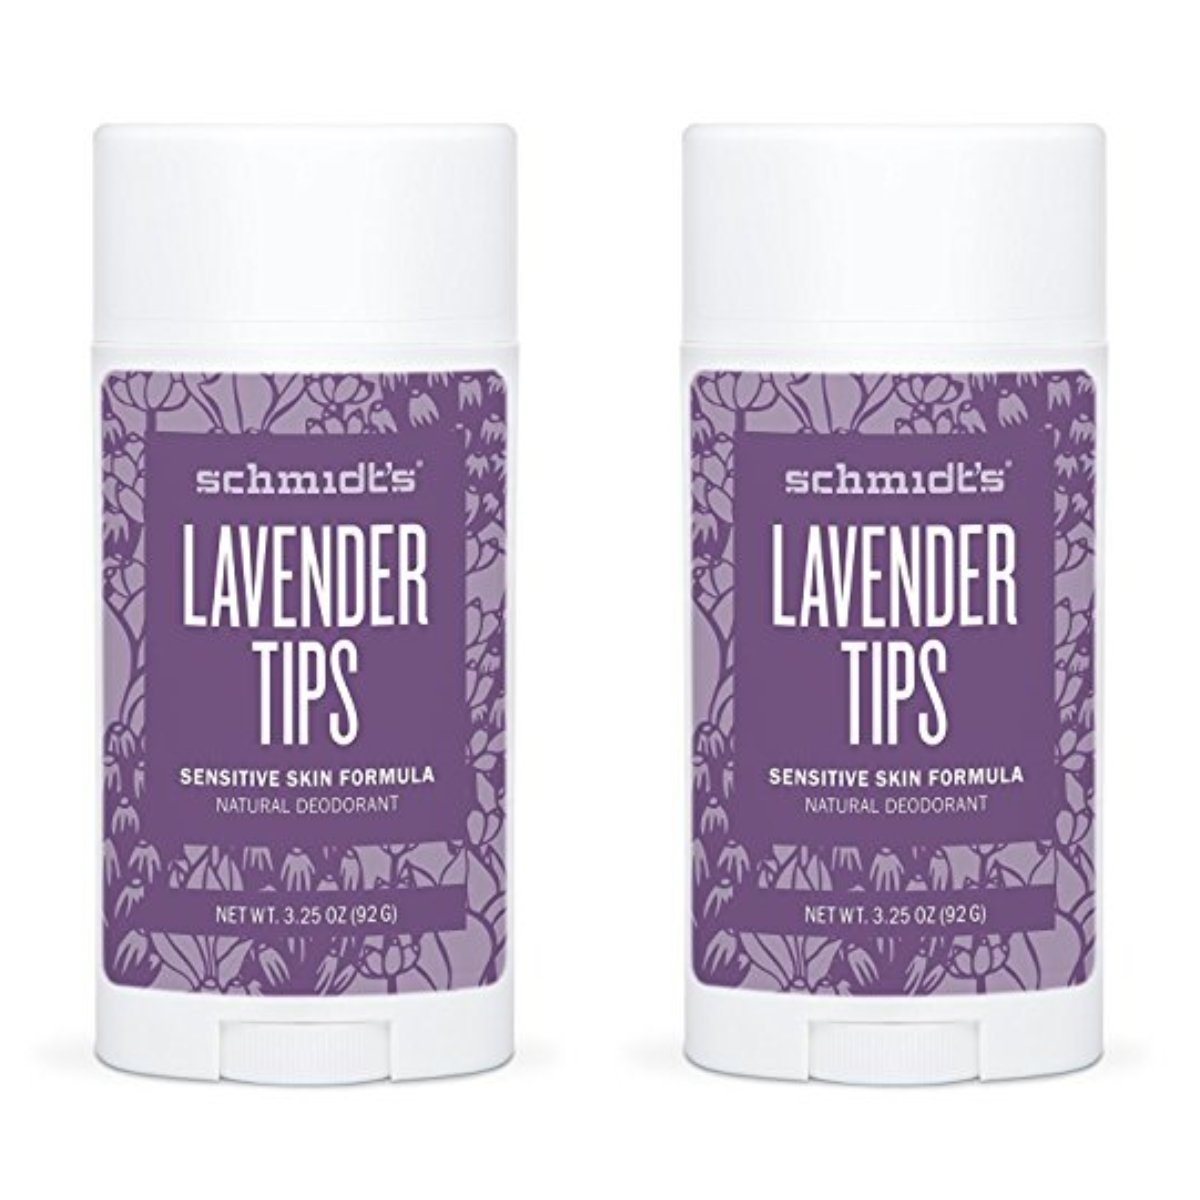 Schmidt's Natural Deodorant - Lavender Tips 3.25 Oz Sensitive Skin Stick; Aluminum-Free Odor Protection & Wetness Relief (Pack Of 2)